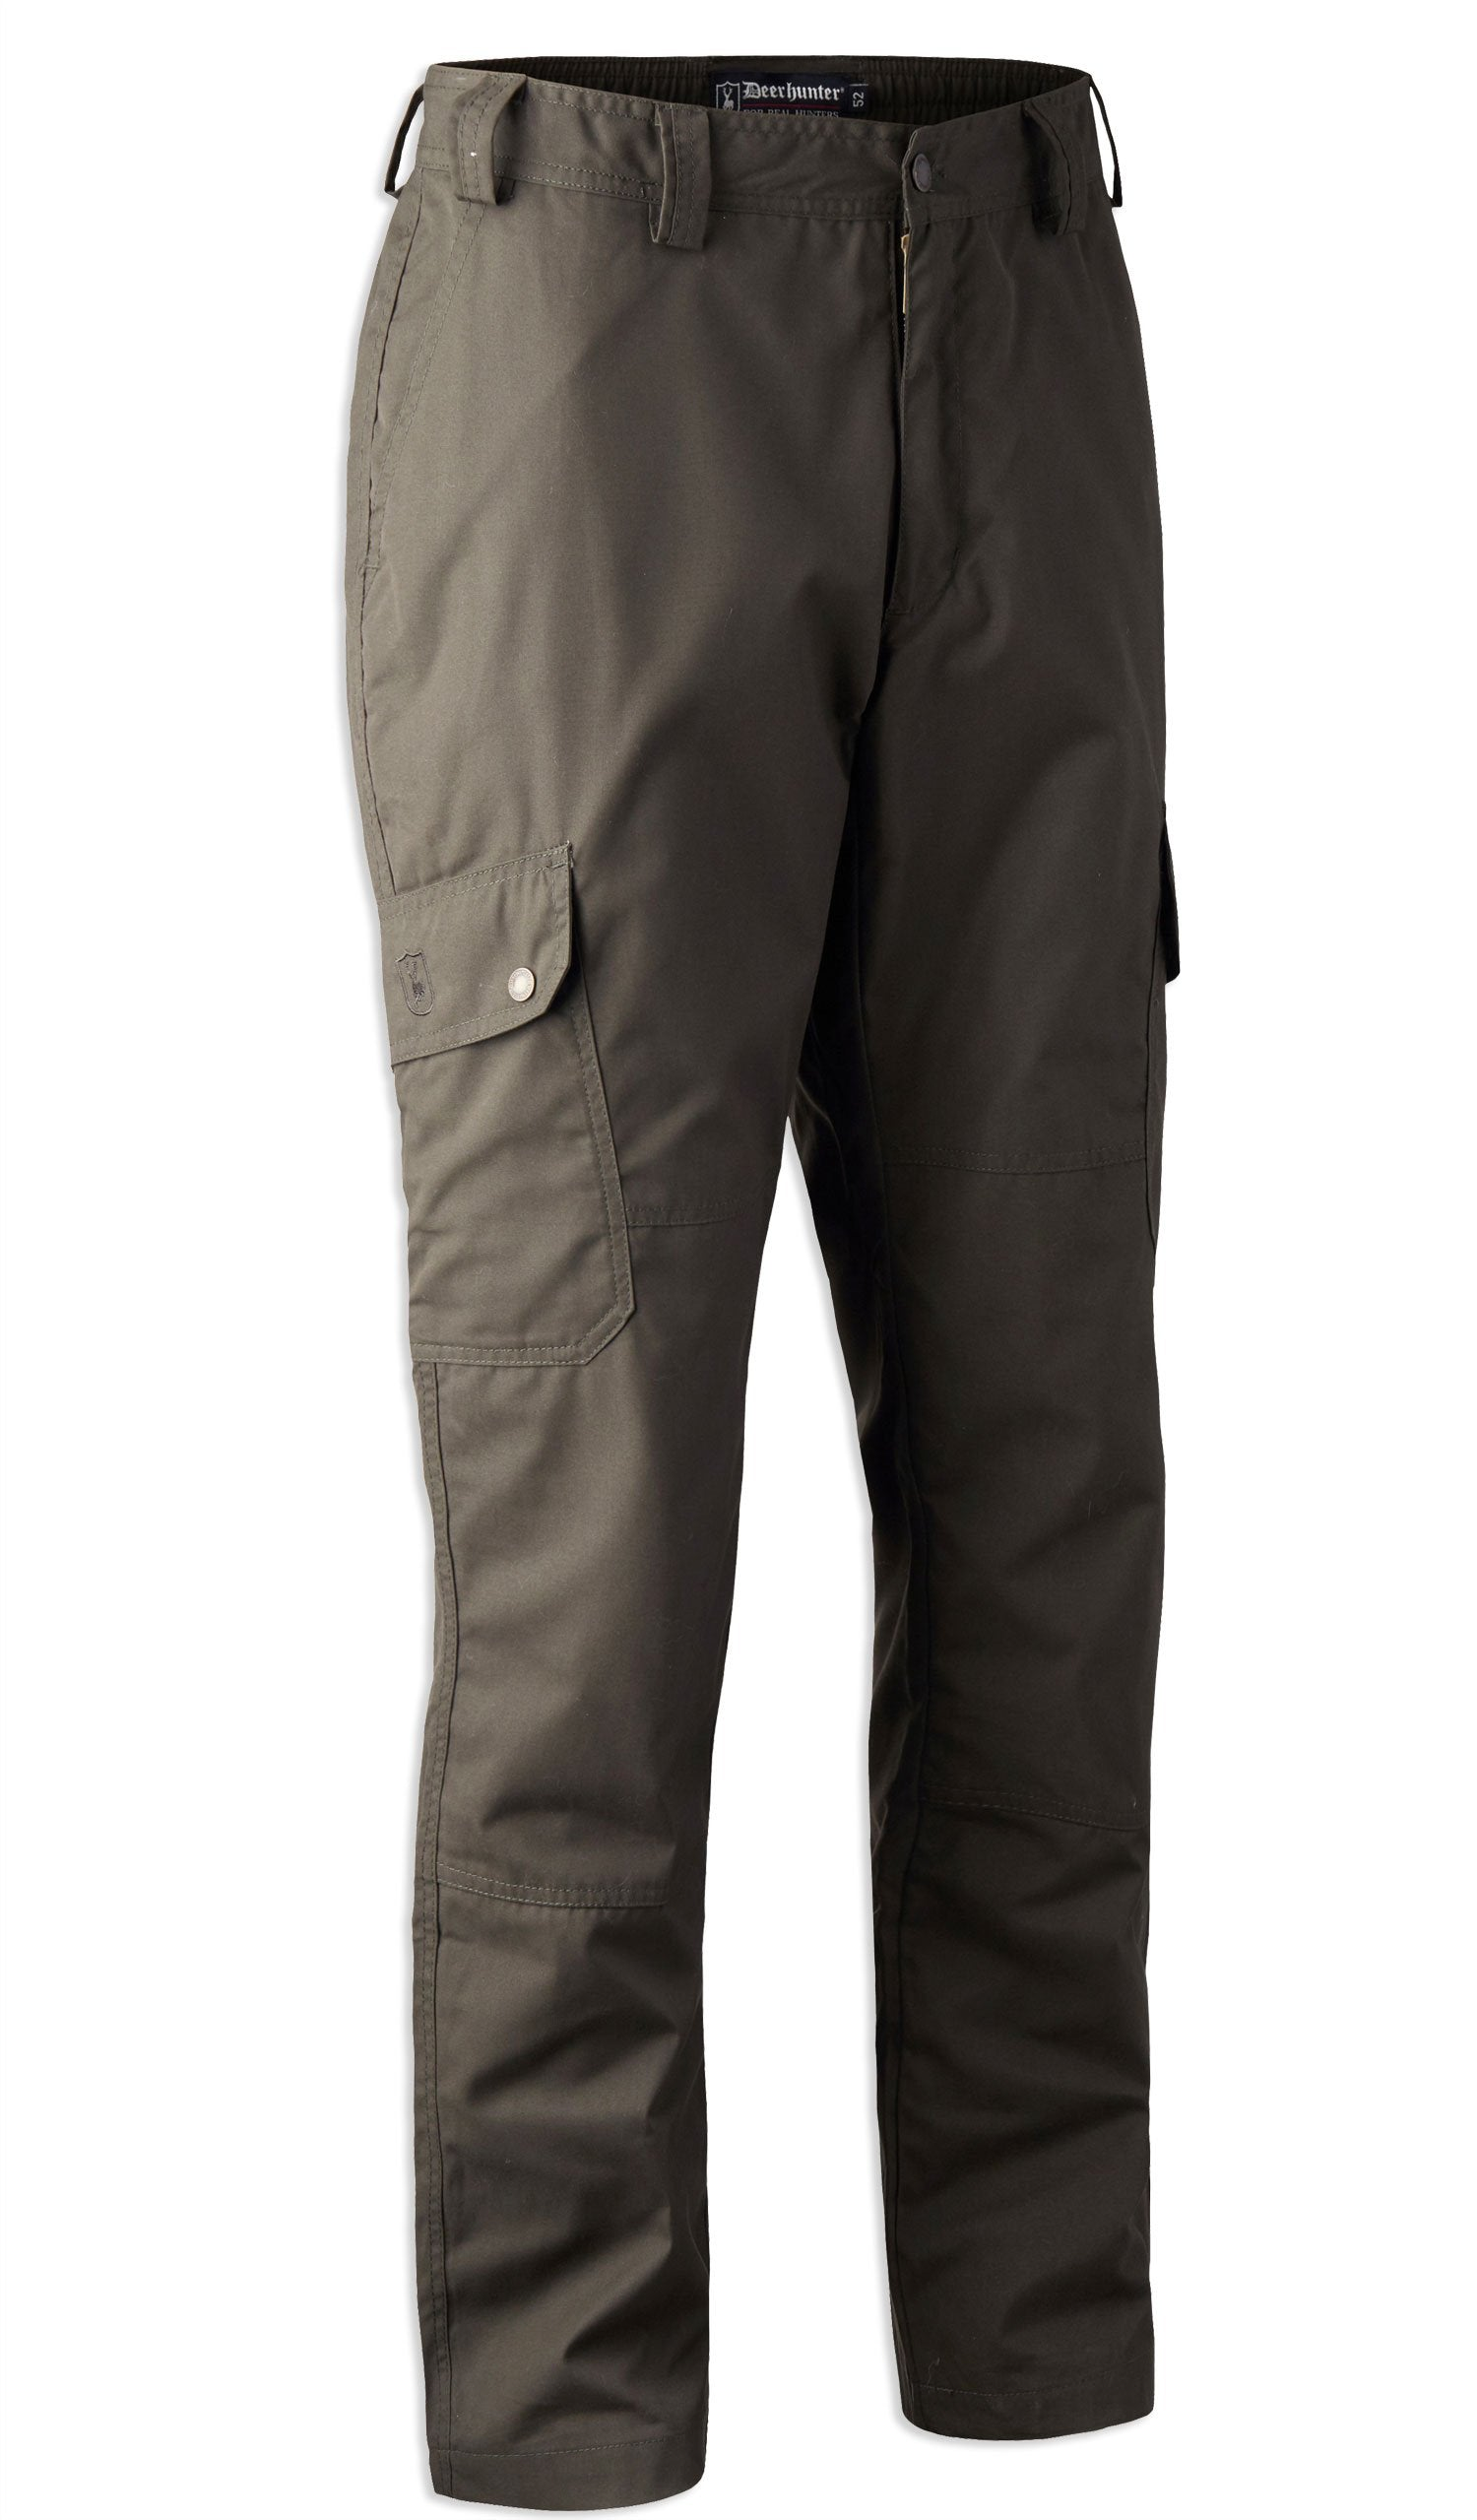 Deerhunter Lofoten Winter Trousers with arm lining